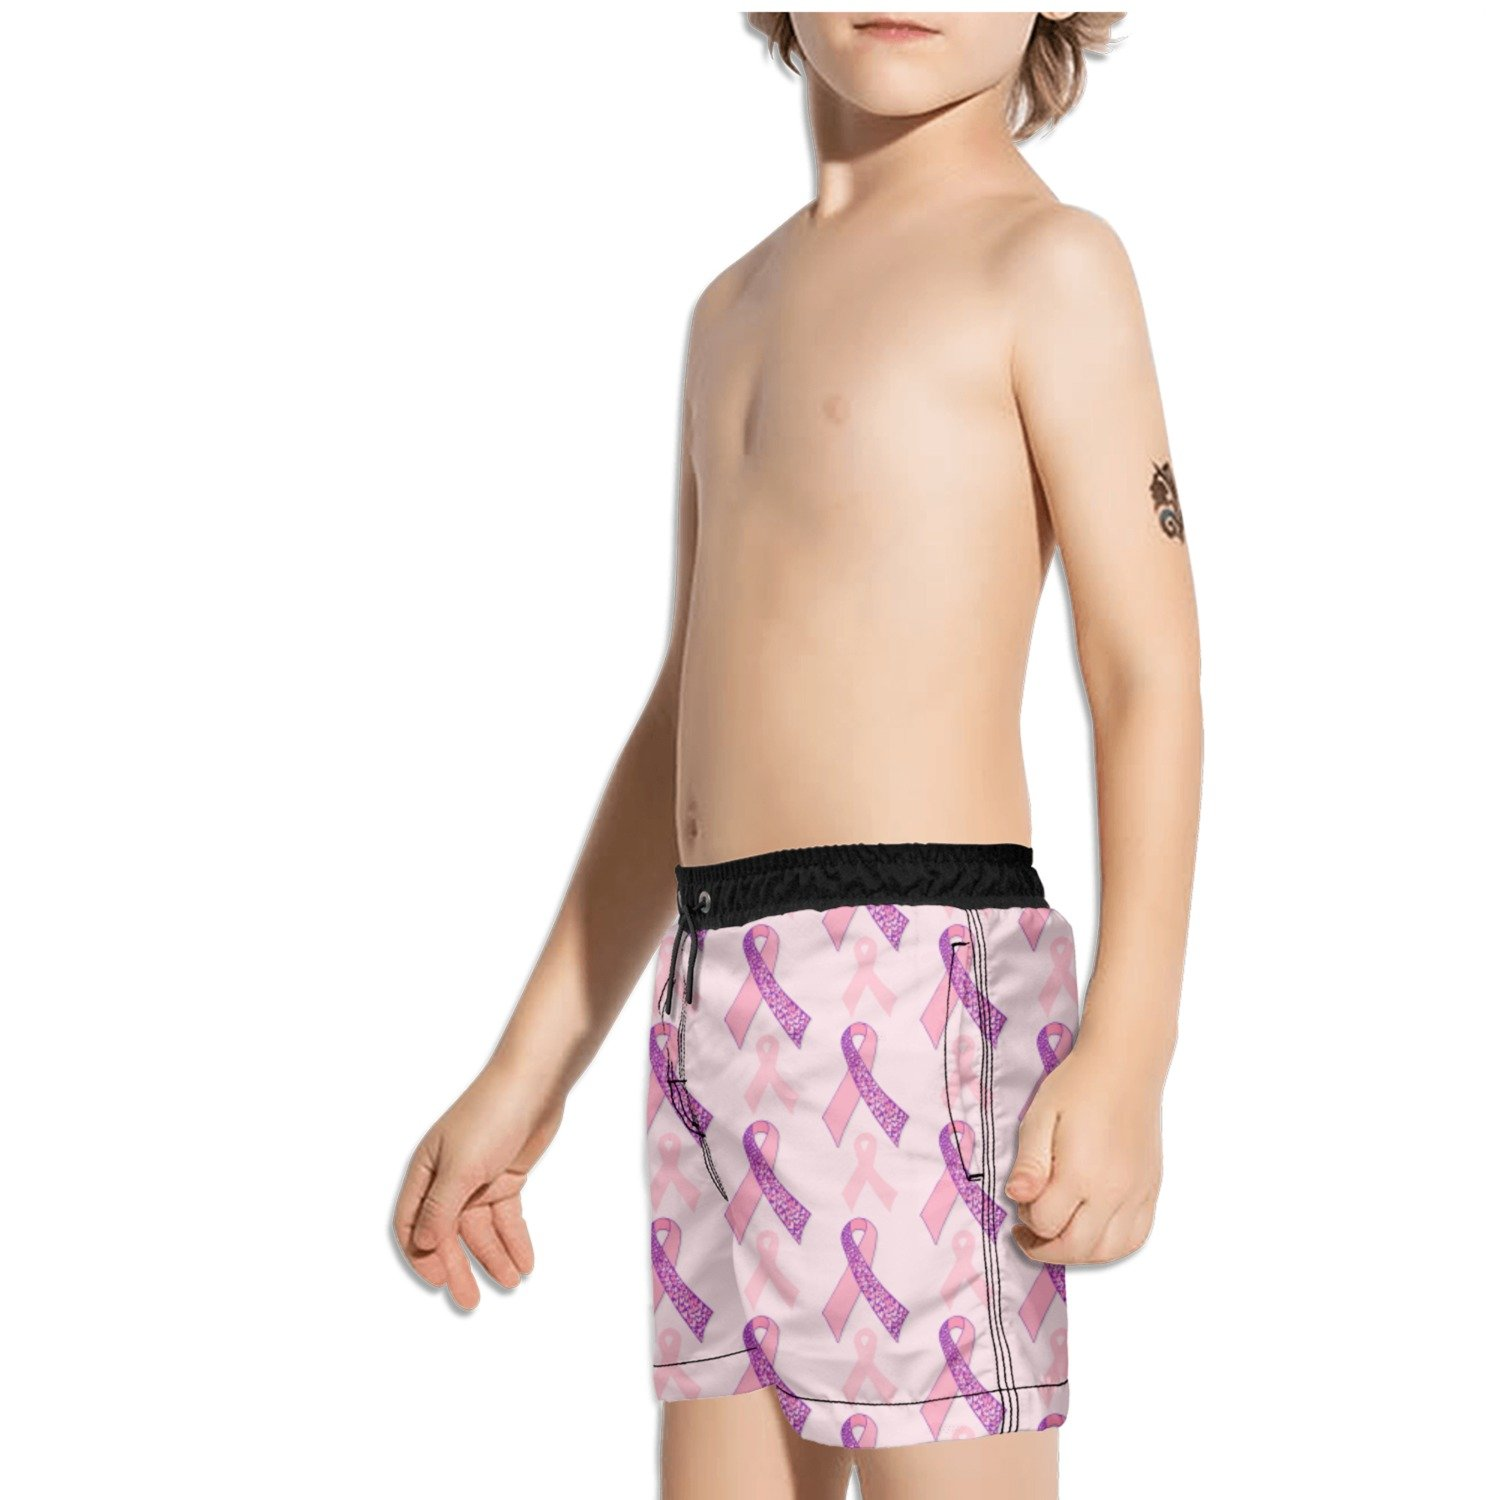 Ouxioaz Boys Swim Trunk Pink Purple Breast Cancer Beach Board Shorts